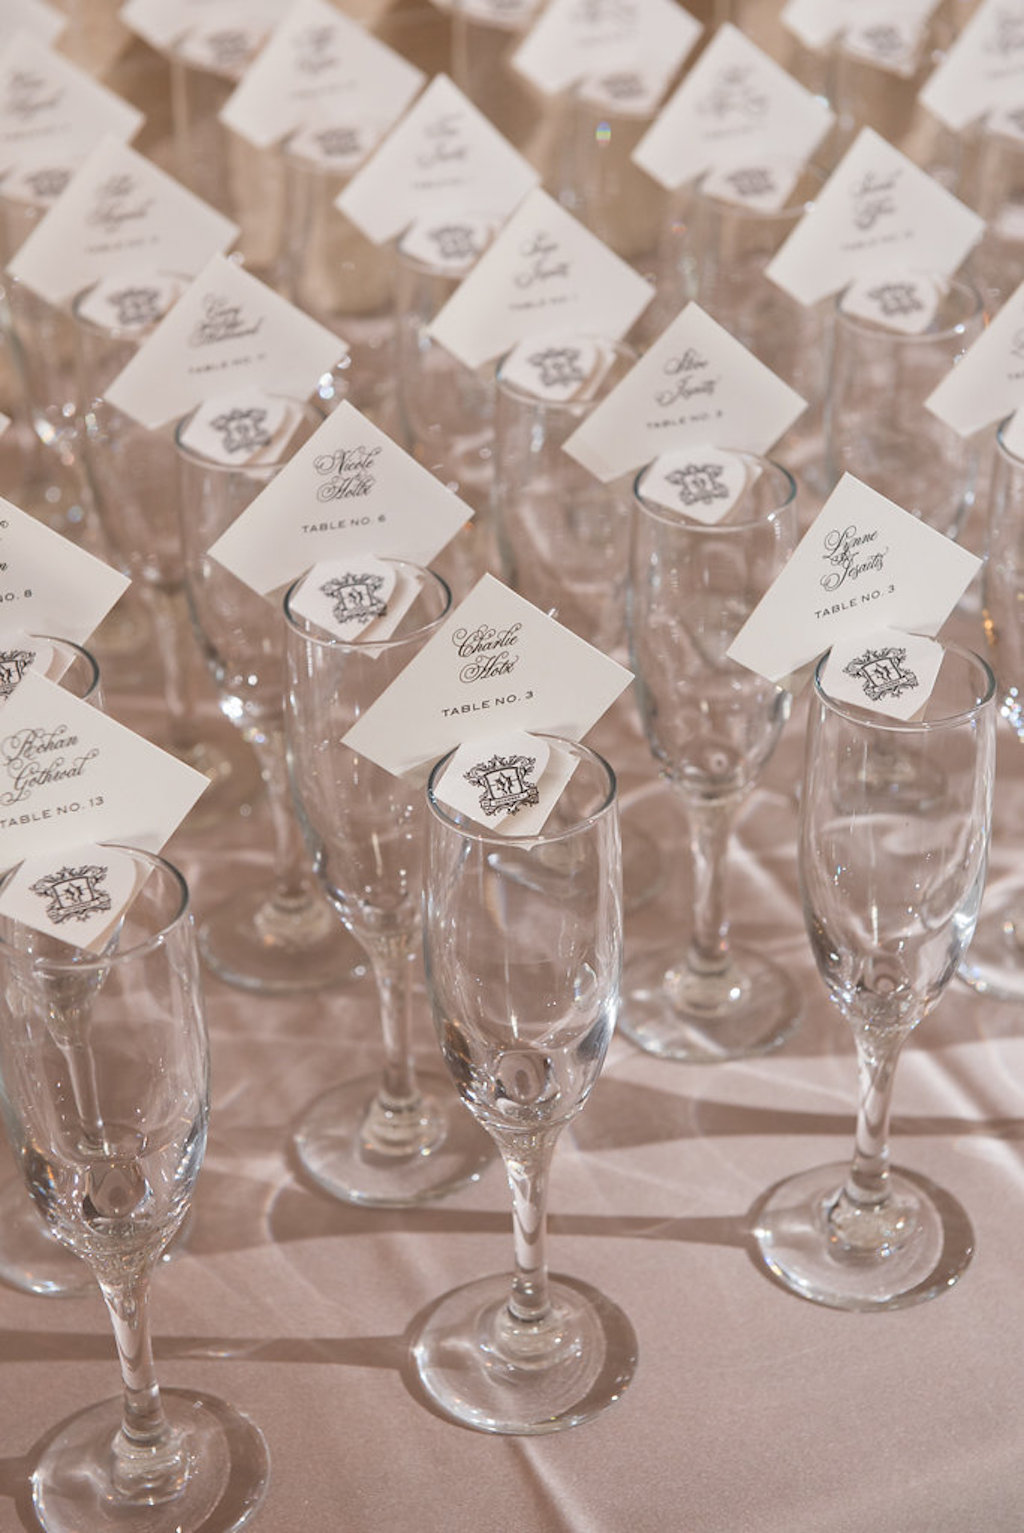 Champagne Glass Escort Card Table with Square White Cards with Elegant Dark Blue Printed Script and Custom Monogram | Sarasota Wedding Stationery and Paper Goods URBANcoast